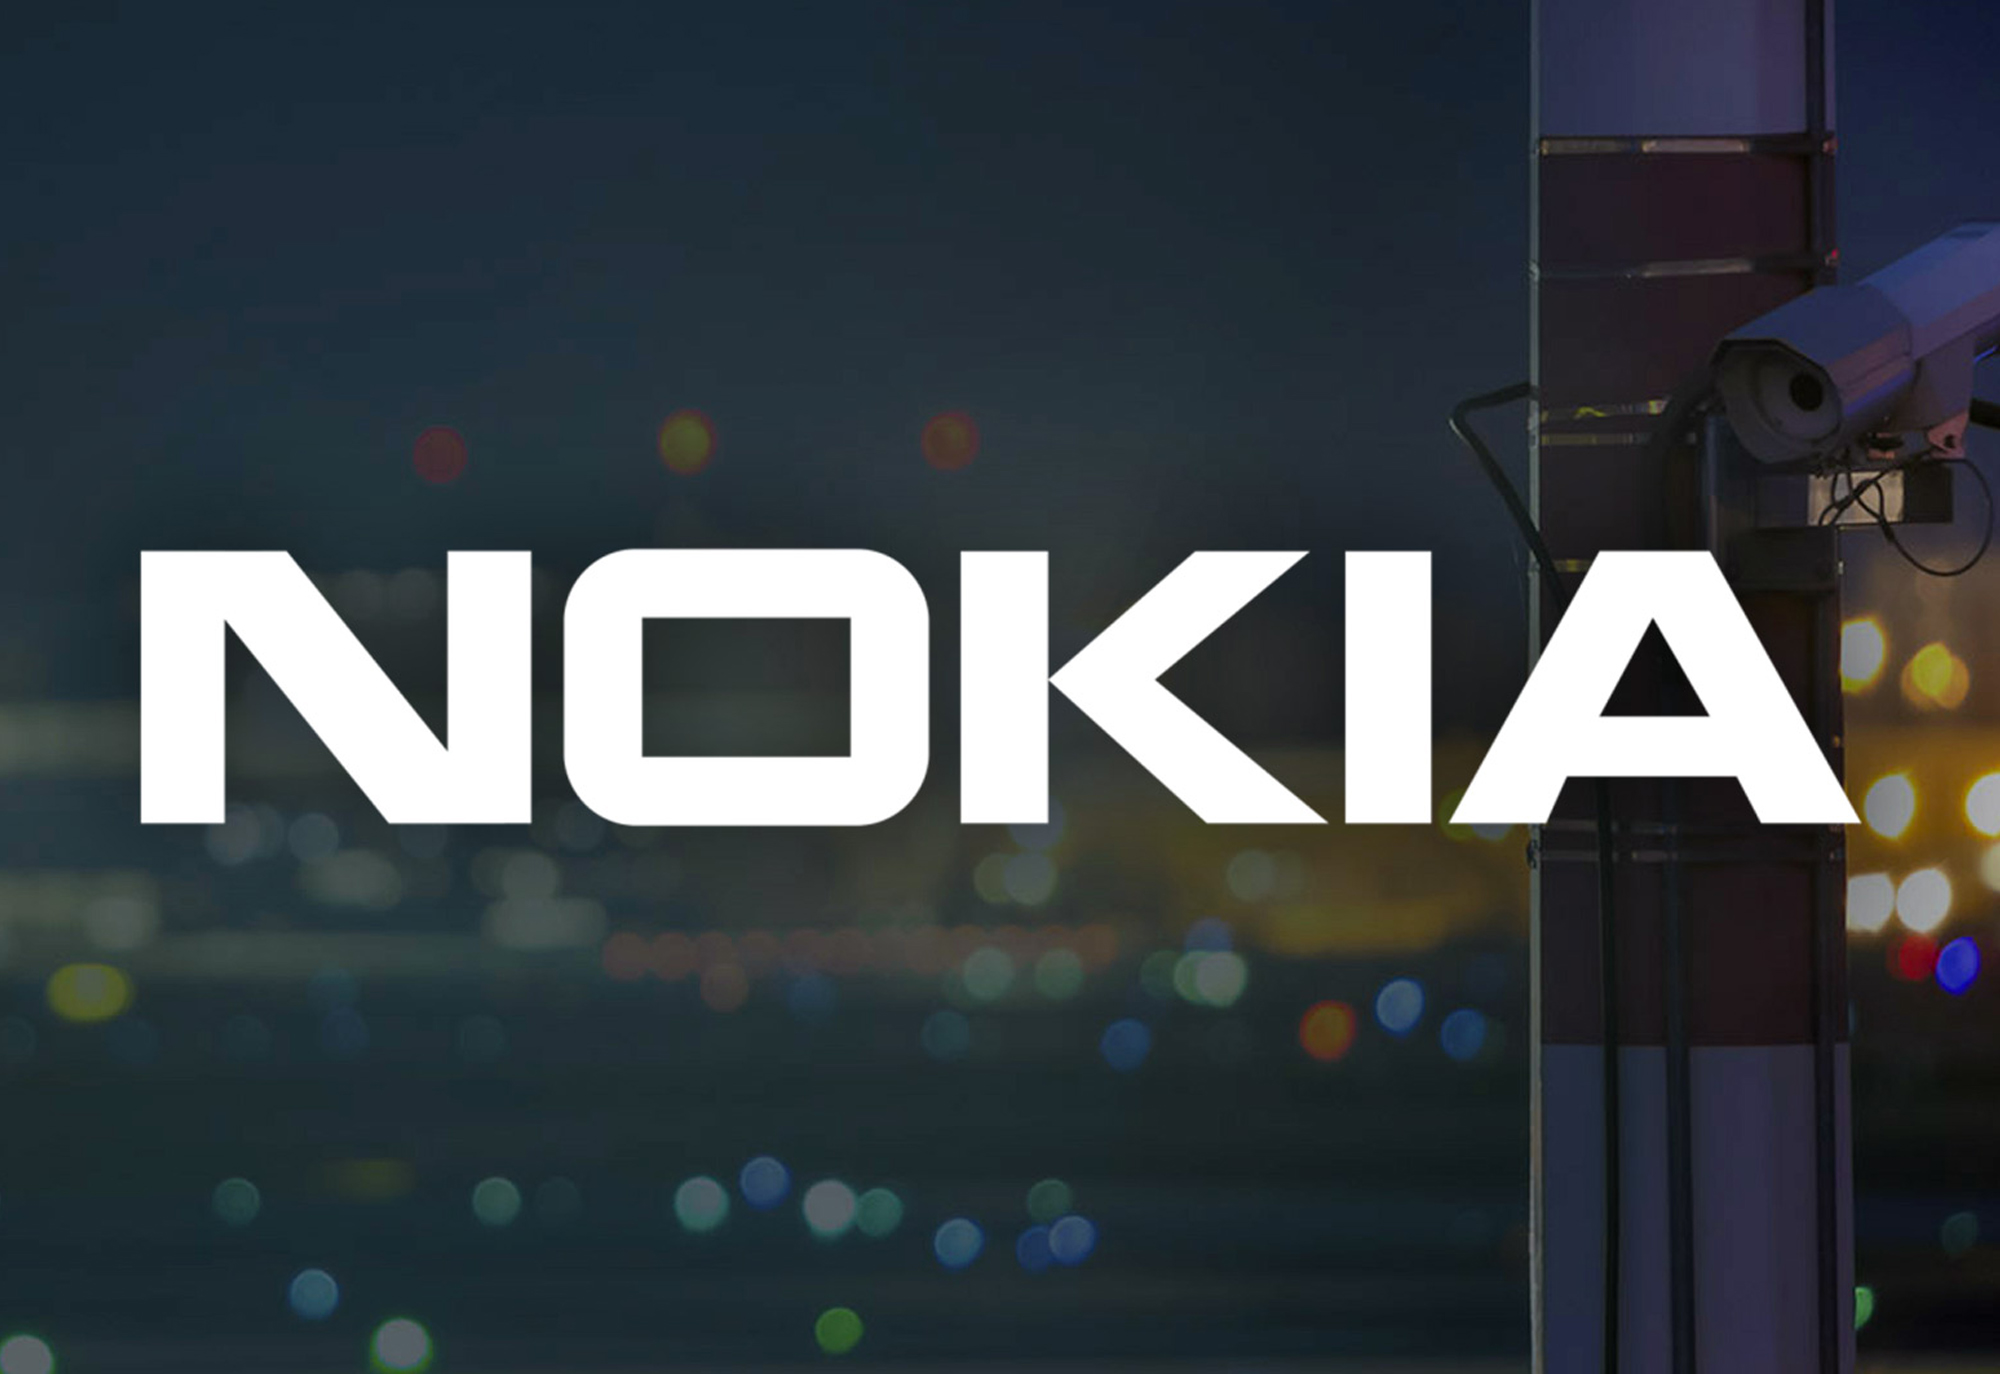 Rekor Systems Selected by Nokia to Provide Automatic License Plate Reader Software as Part of Nokia's Analytics Solutions